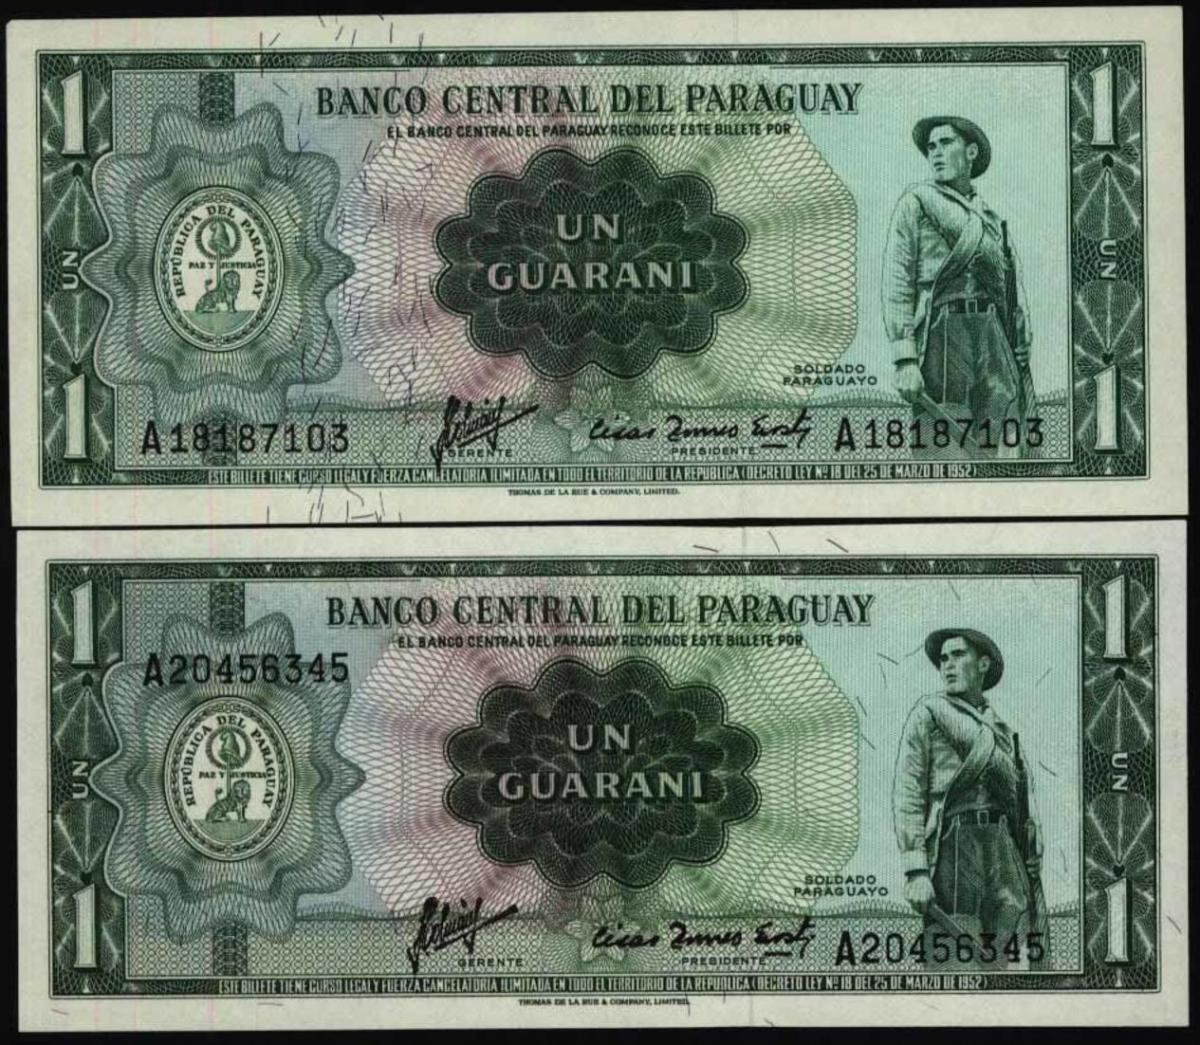 Geldschein Credit Note Banknote Paraguay 1 Guarani 192-3 a 1952 - I.